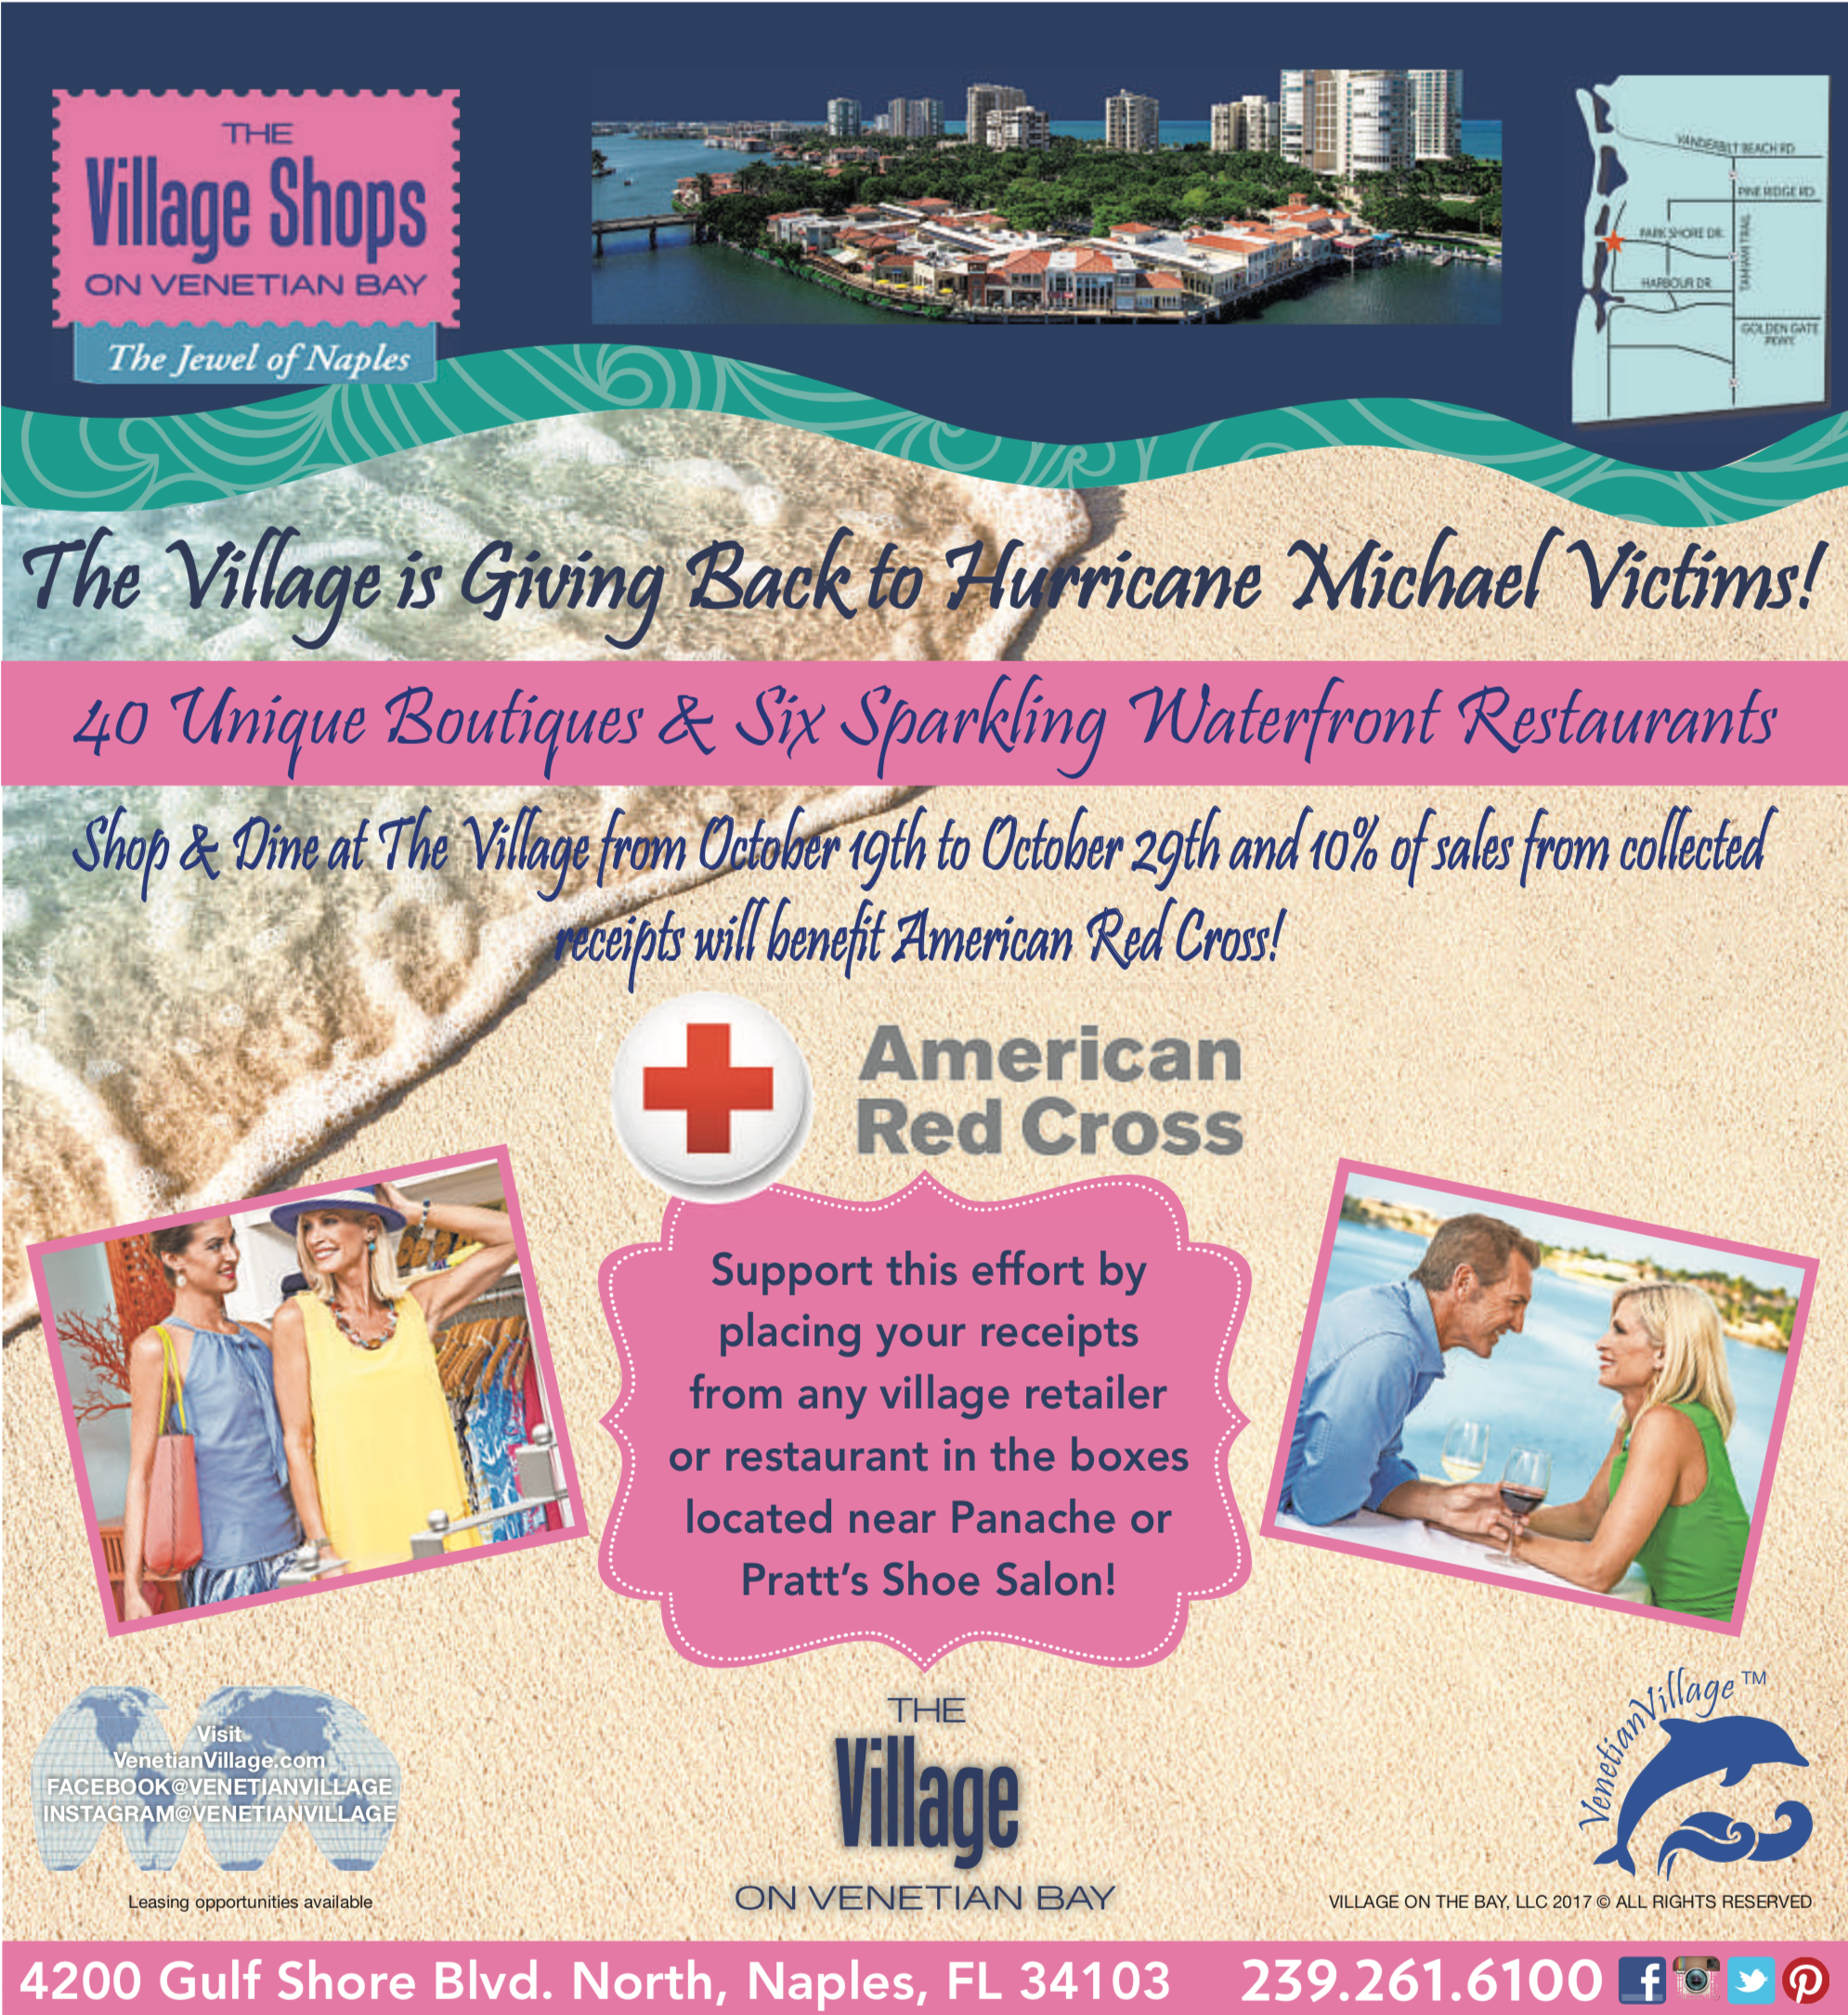 Shop For A Cause: The Village Shops on Venetian Bay is Giving Back to Hurricane Michael Victims!